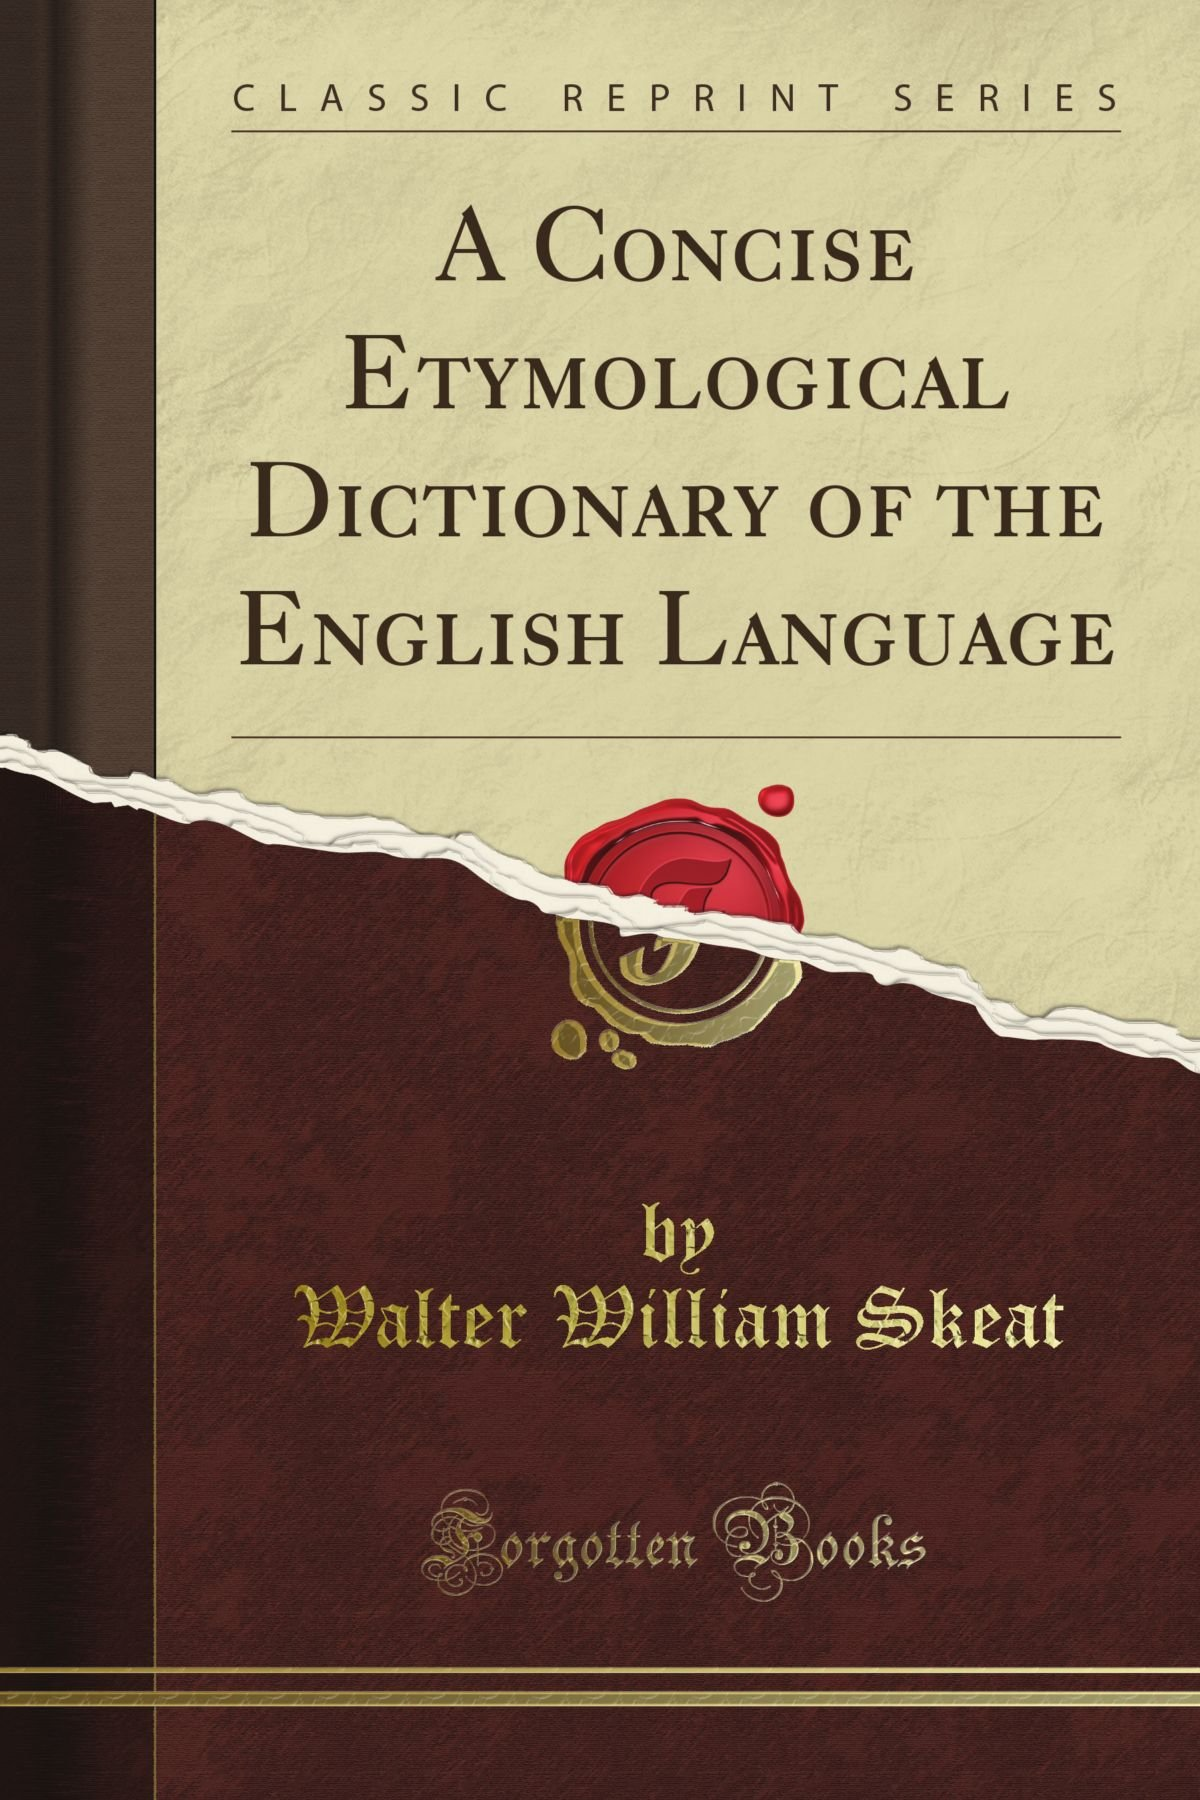 A Concise Etymological Dictionary of the English Language (Classic Reprint) ebook